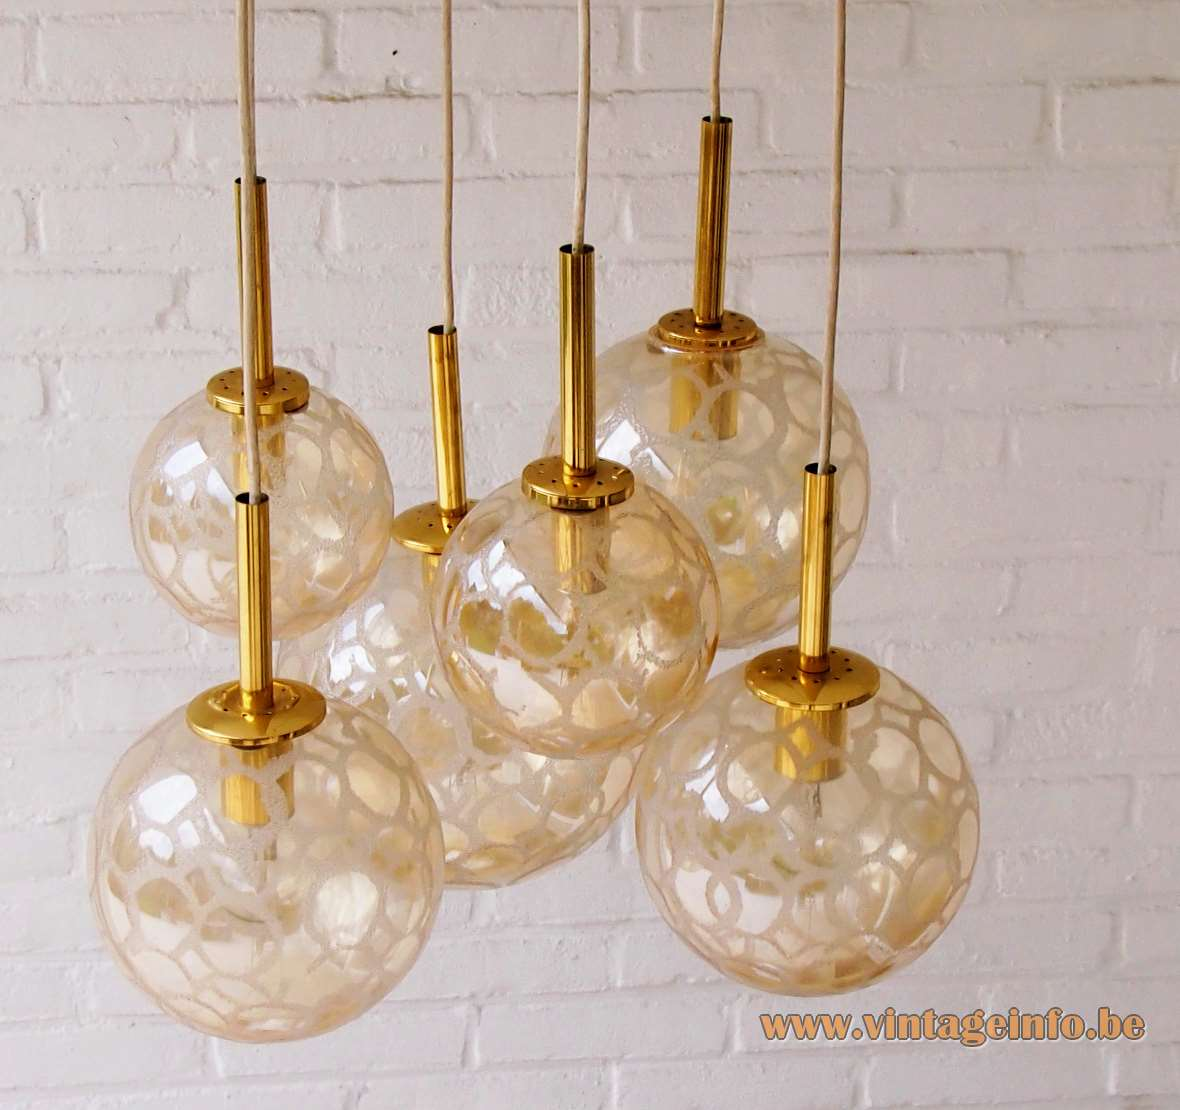 DORIA croco-ice cascade chandelier 6 amber glass globes pendant lamps brass spider mount 1970s Germany